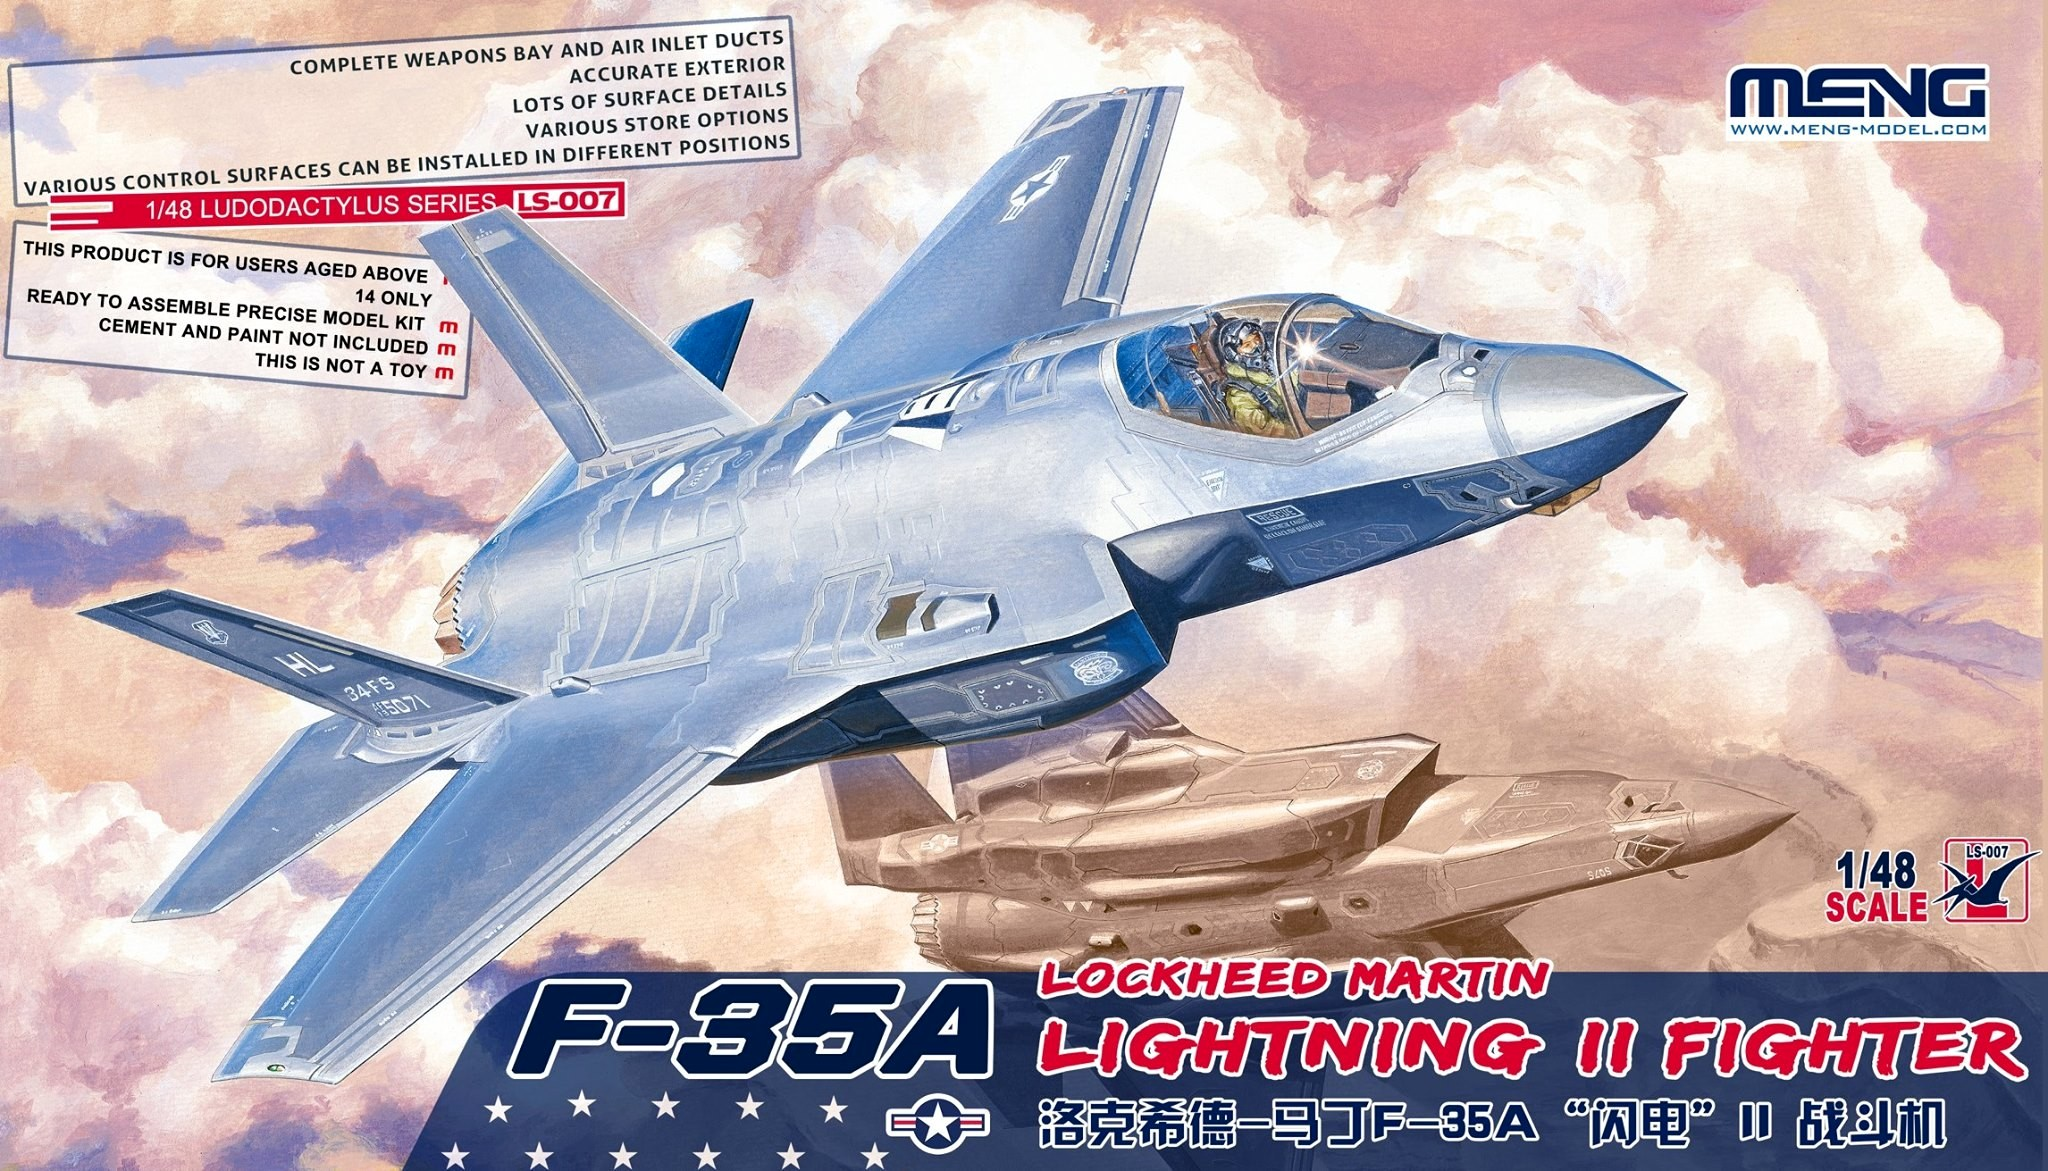 Lockheed Martin F-35A Lightning II Fighter